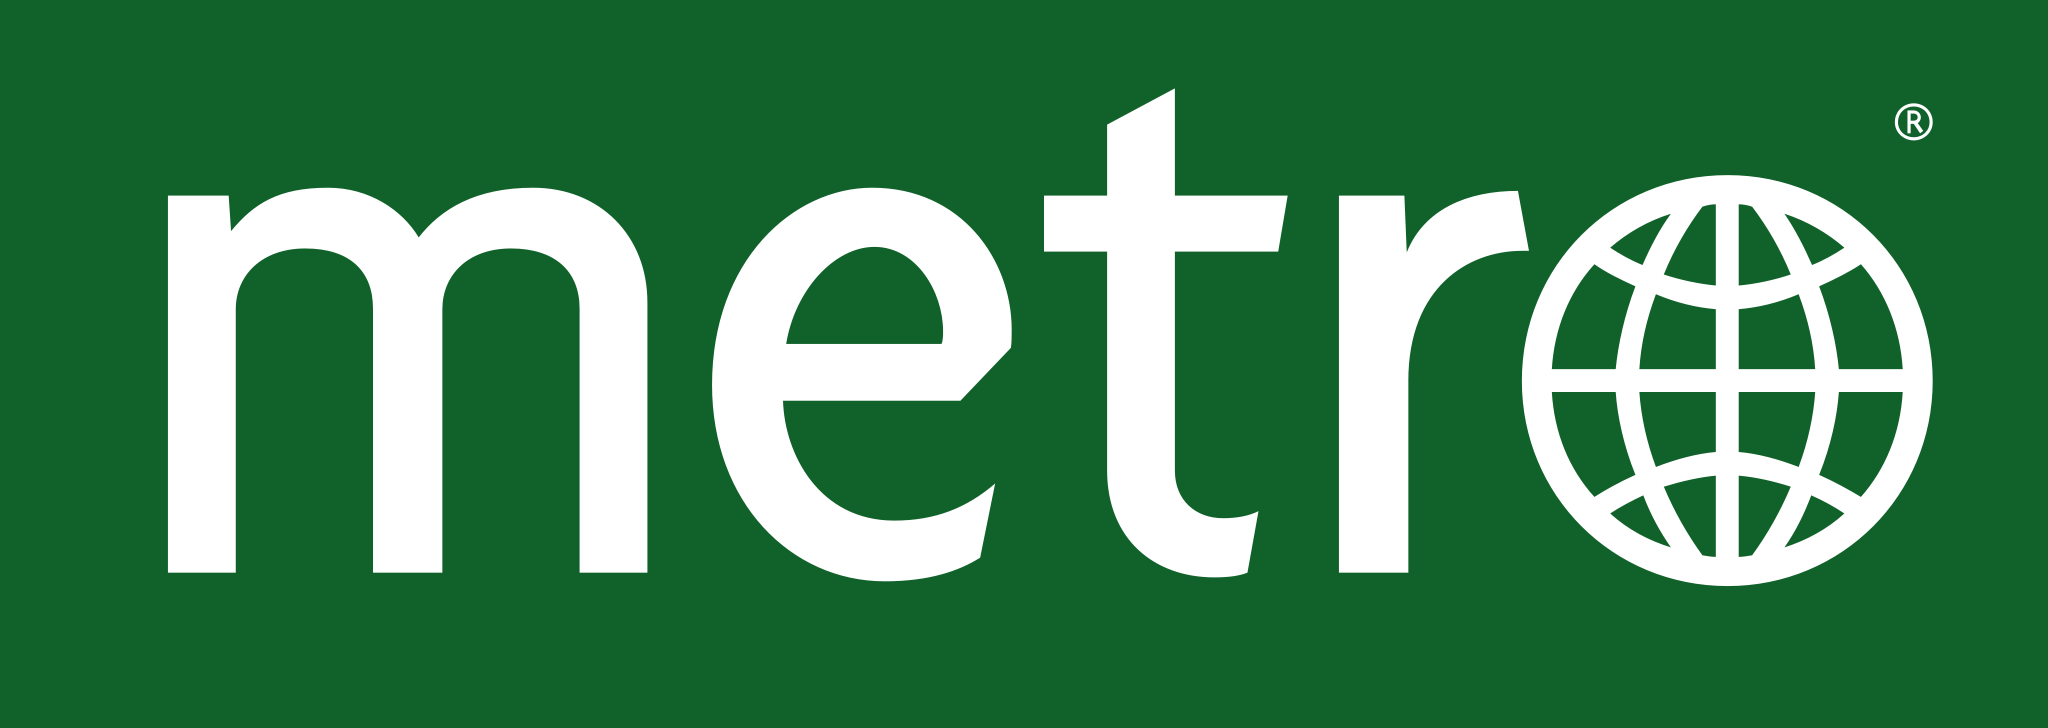 Logo Metro quotidiano